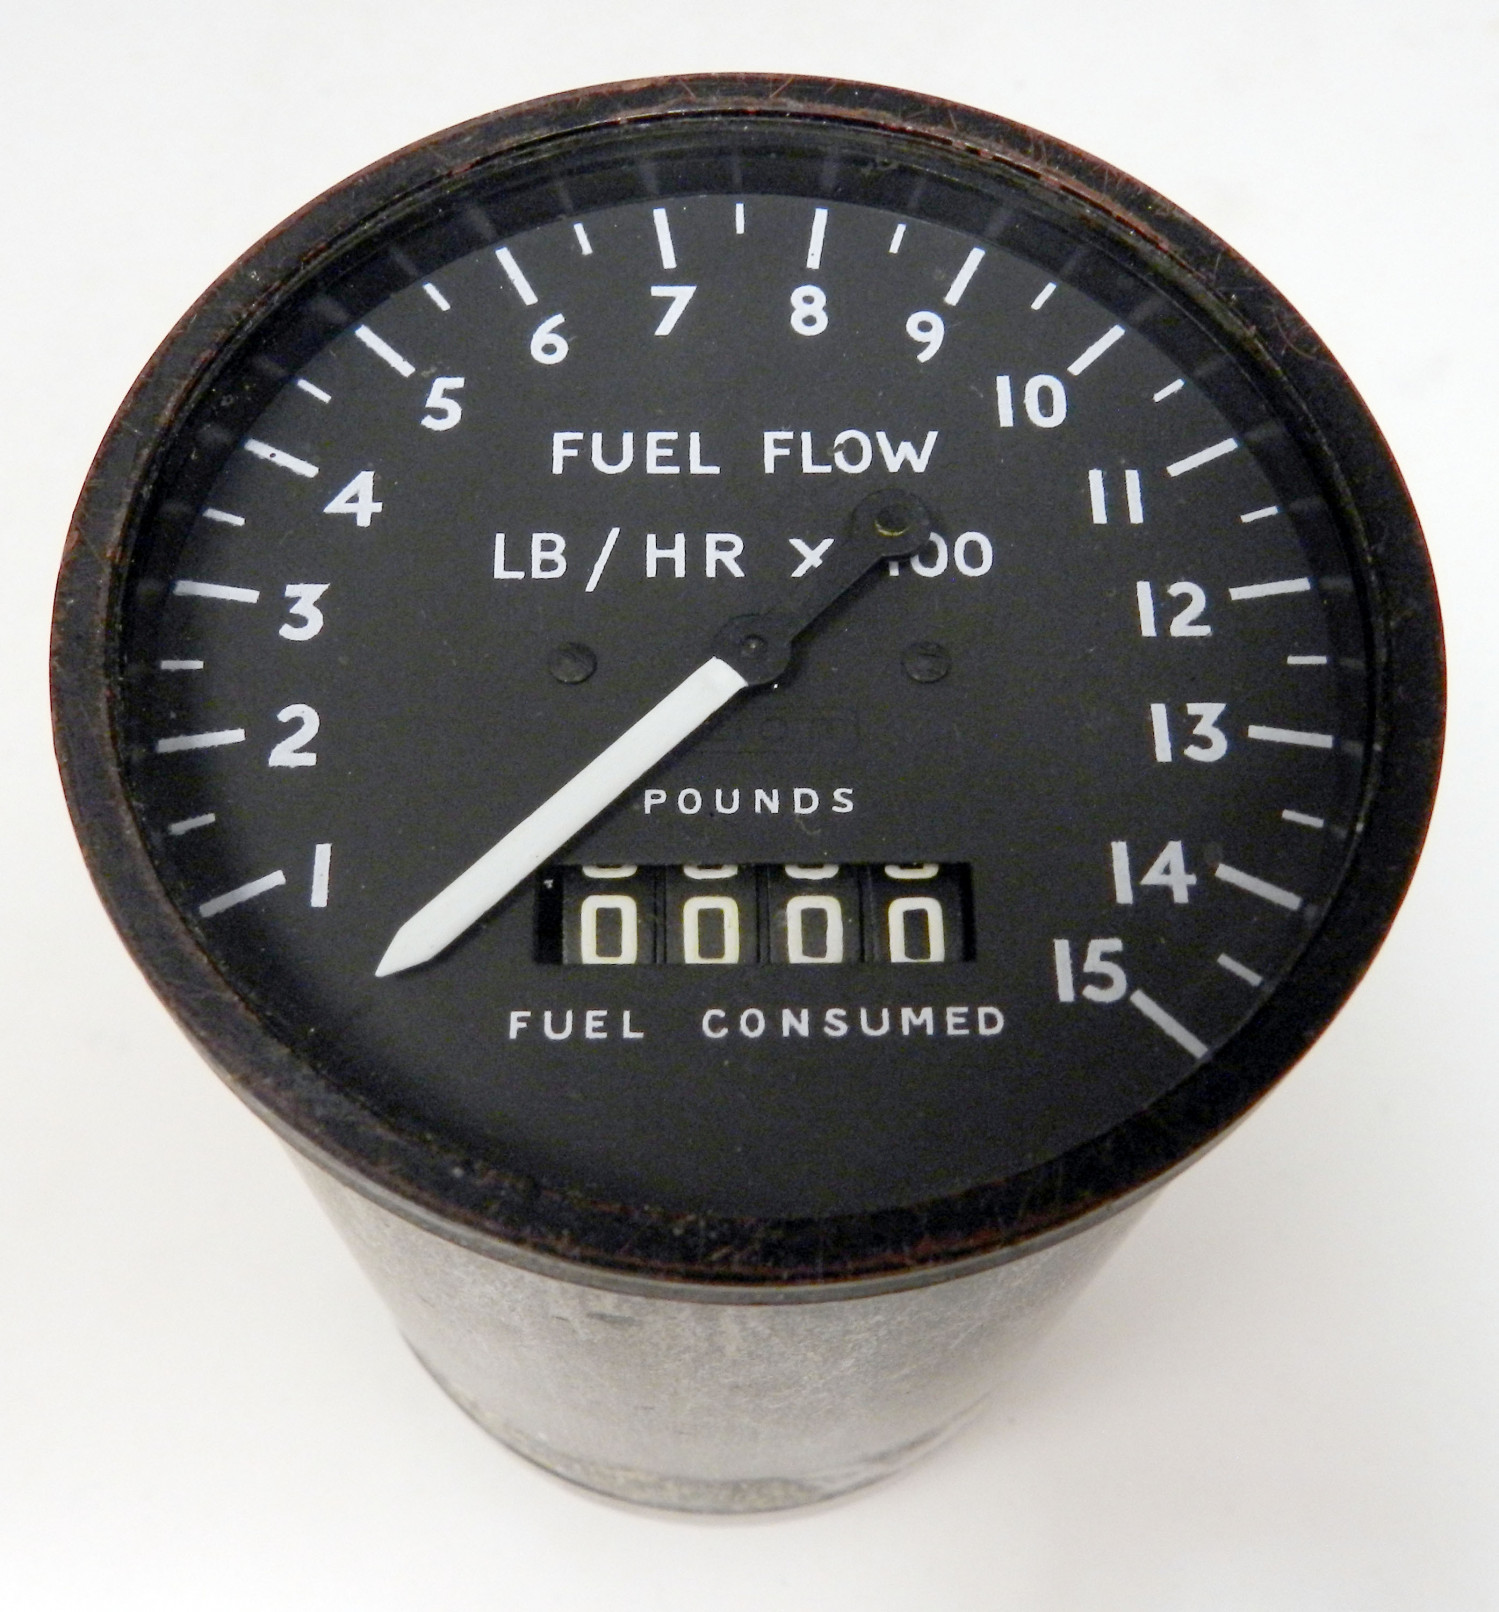 Viscount Fuel Consumed & Flow Rate Indicator